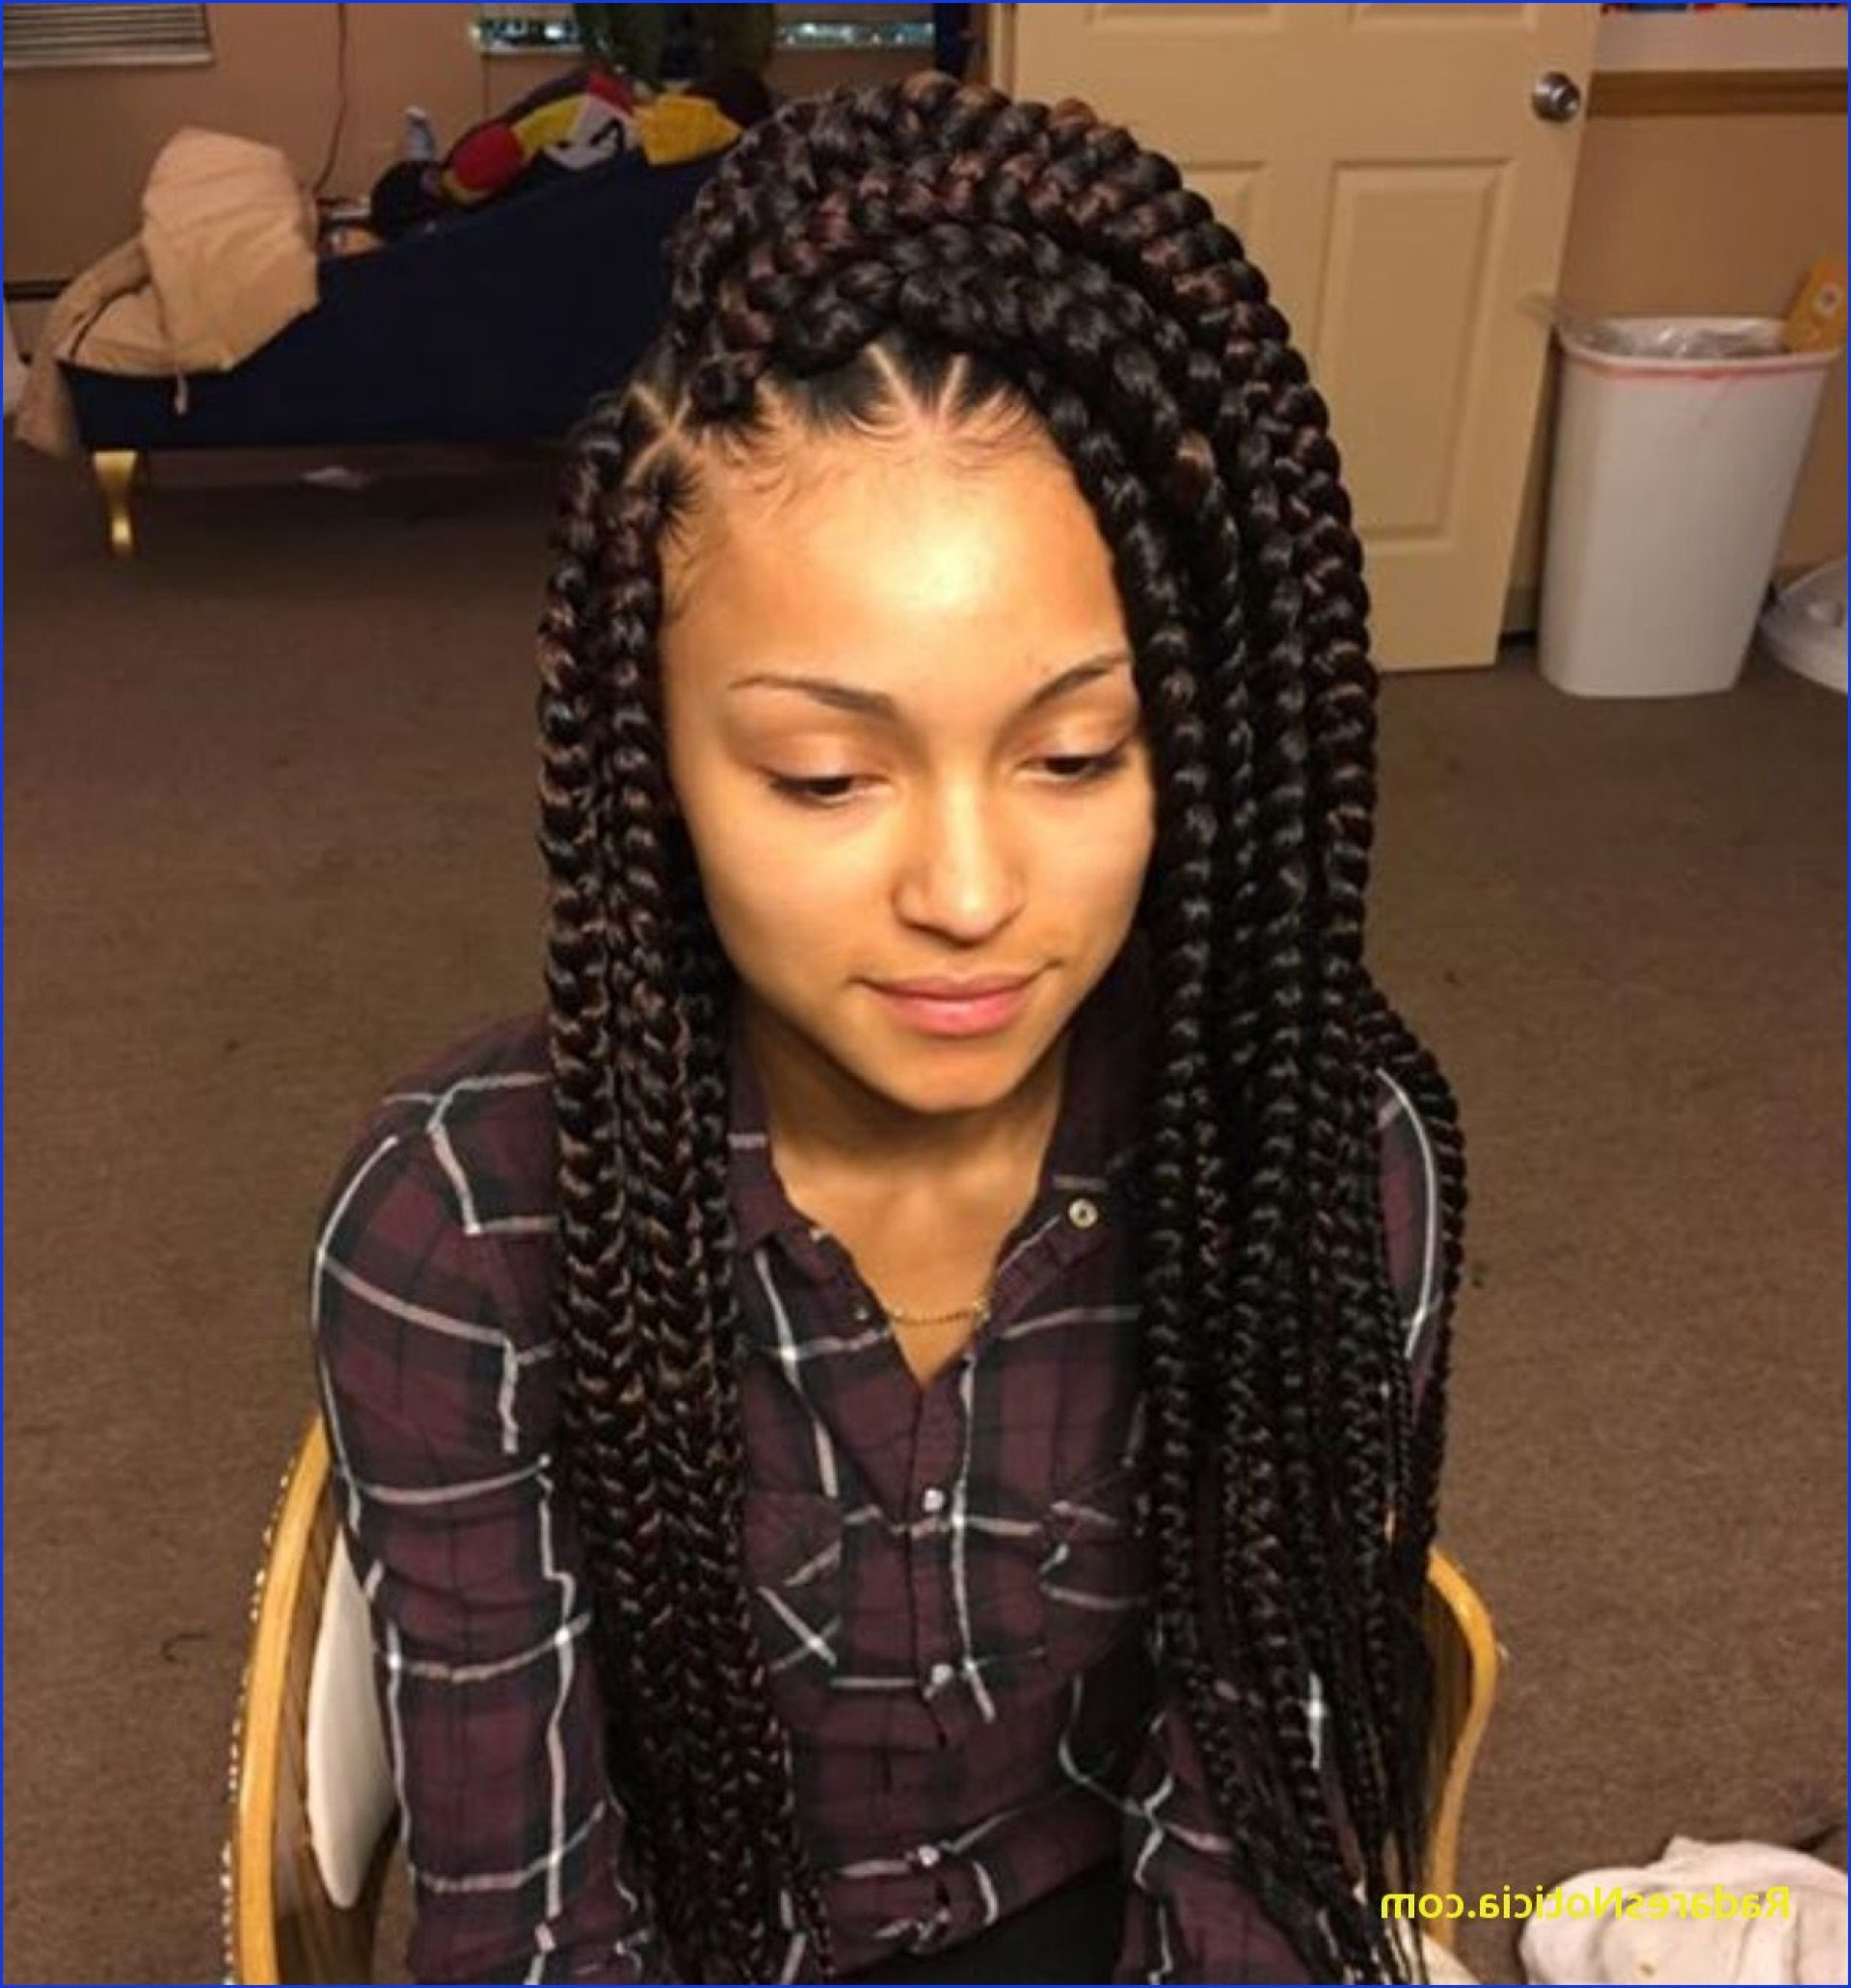 Hairstyles : Braided Mohawk Updo Fab Fashion Braided Mohawk Intended For 2021 Big Braid Mohawk Hairstyles (View 10 of 20)